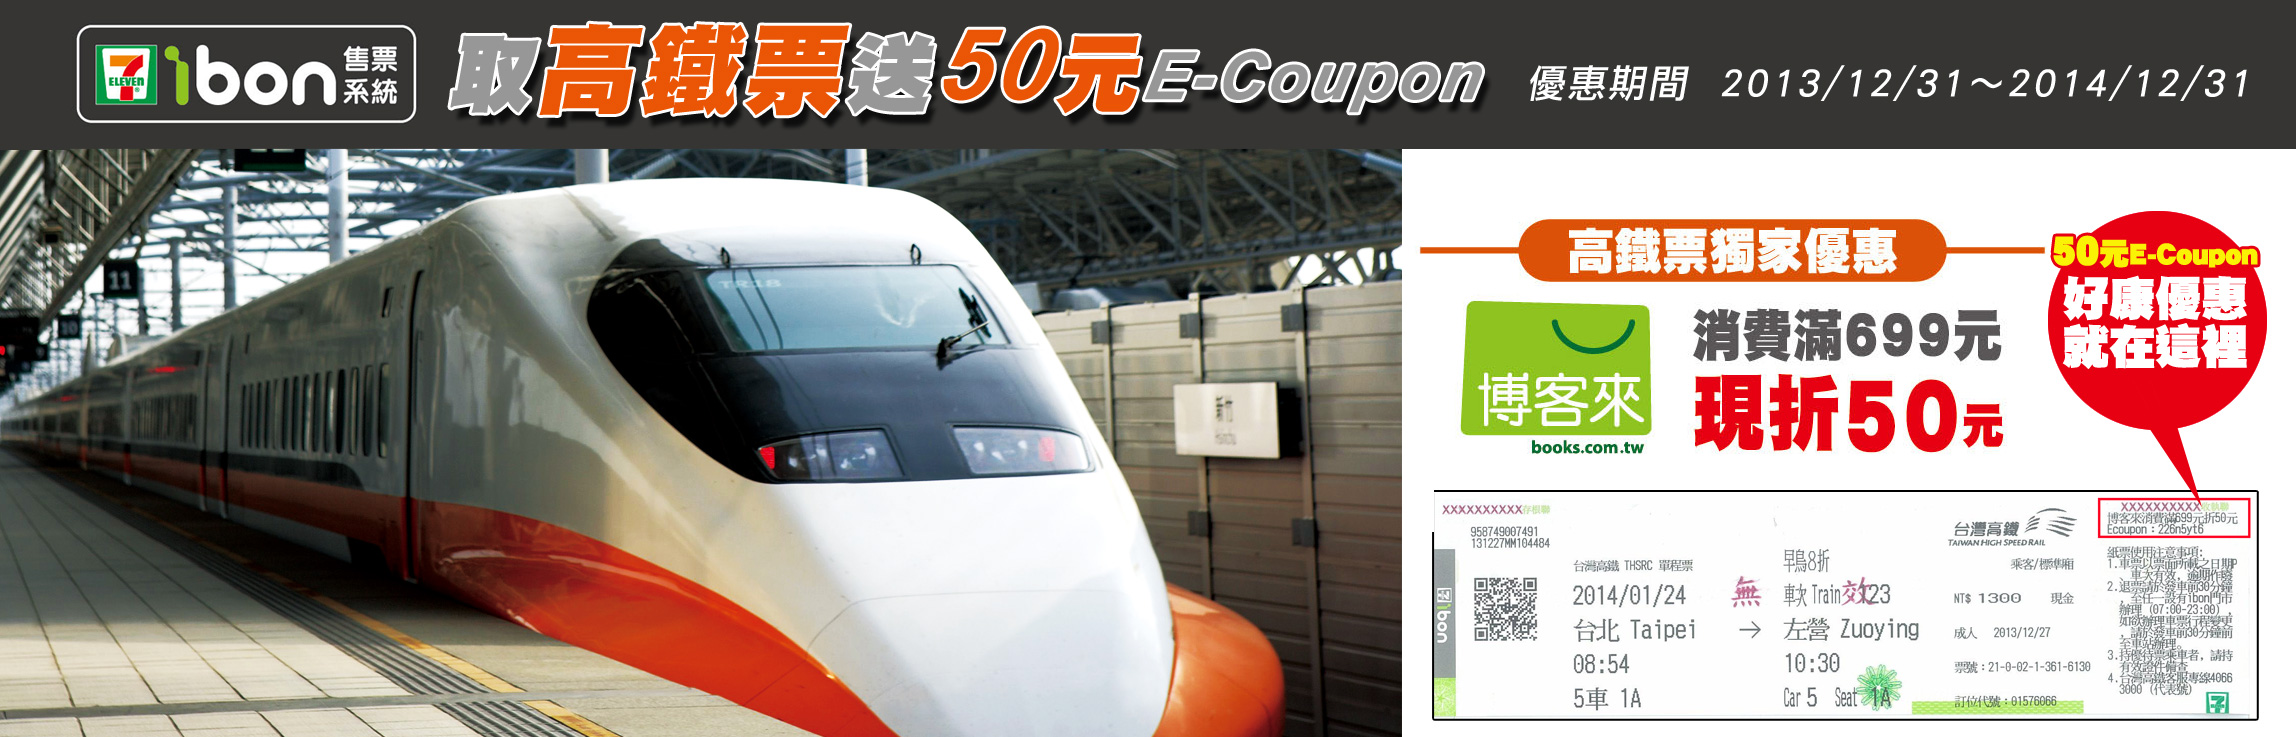 coupon抵扣抵用信用卡博客來E-Coupone-coupon送E-Coupon博客來網路書店50100折價券COLD STONE免費升級券百貨年中慶年中慶2014